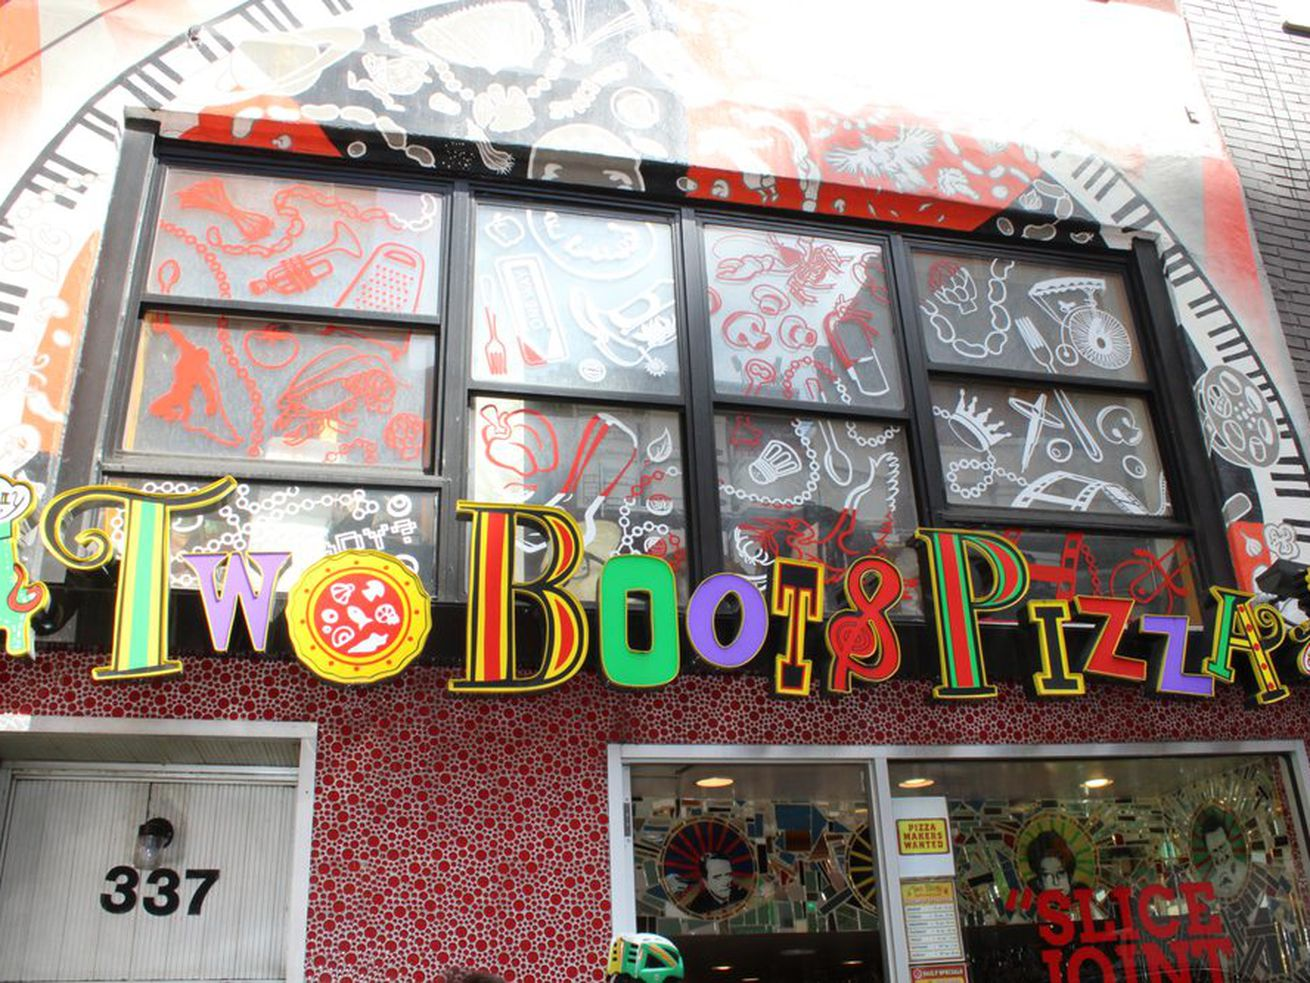 Two Boots Pizza Echo Park